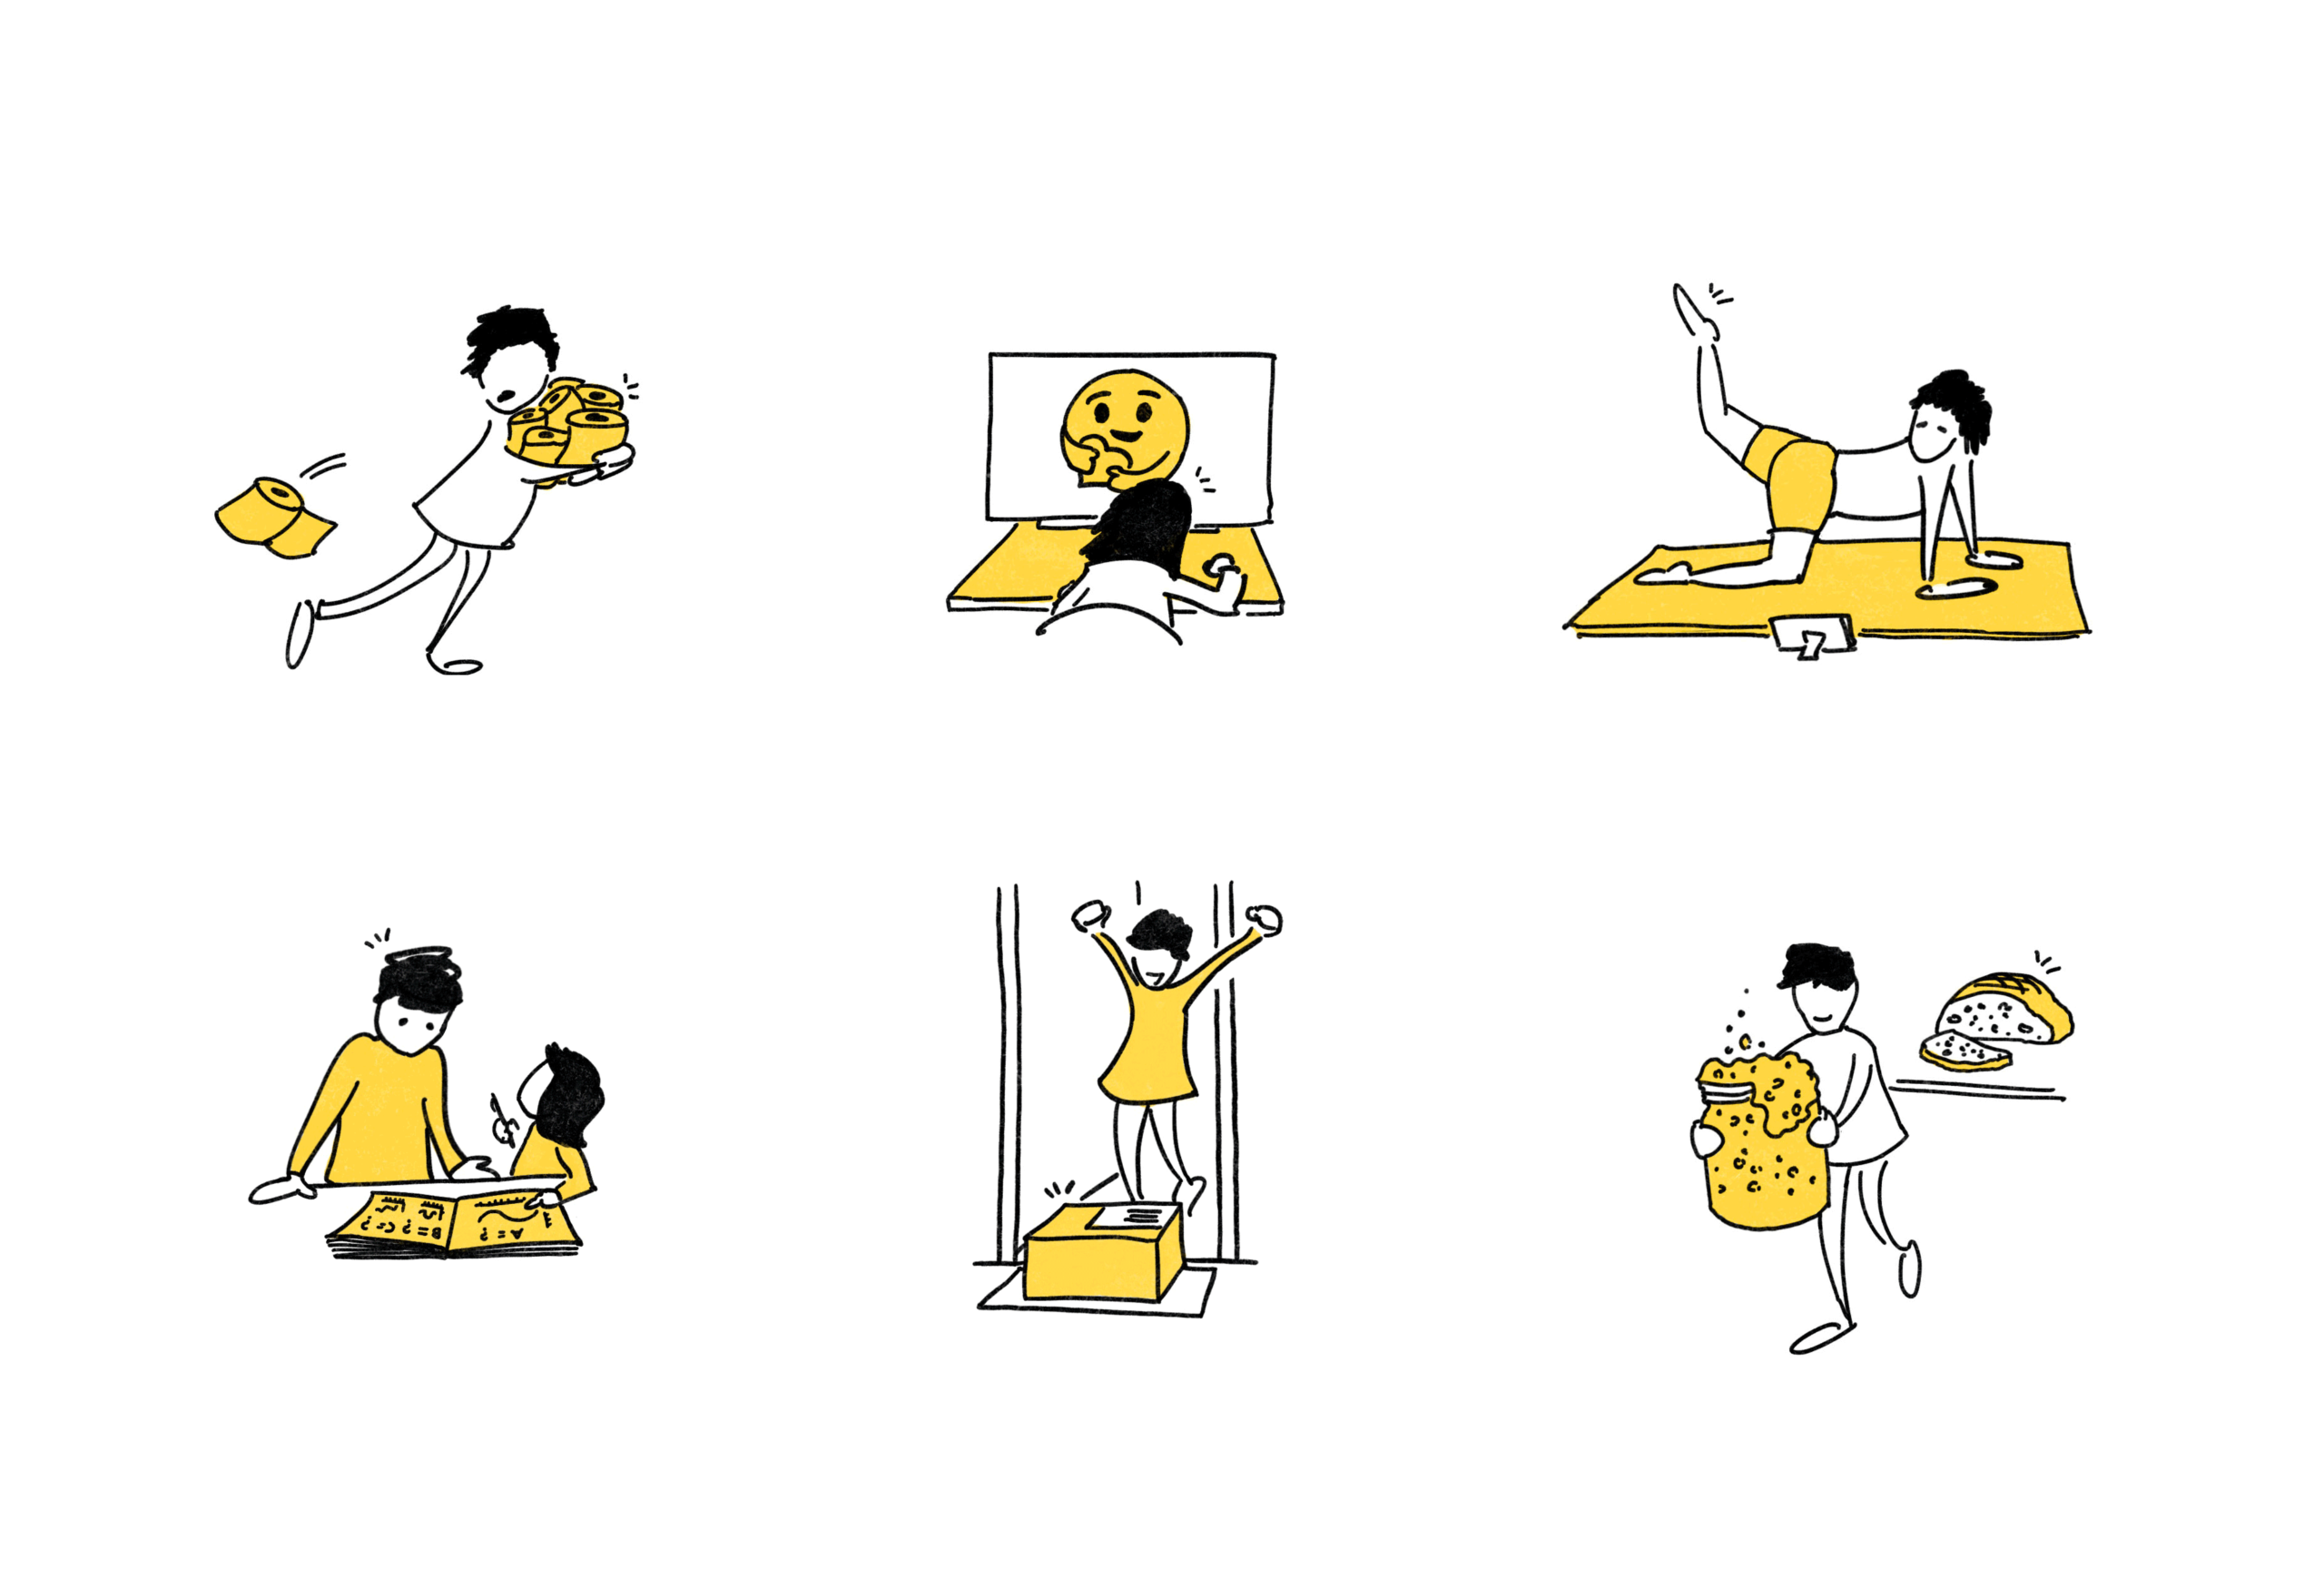 Collection of illustrations of people engaged in different activities often undertaken during social distancing.